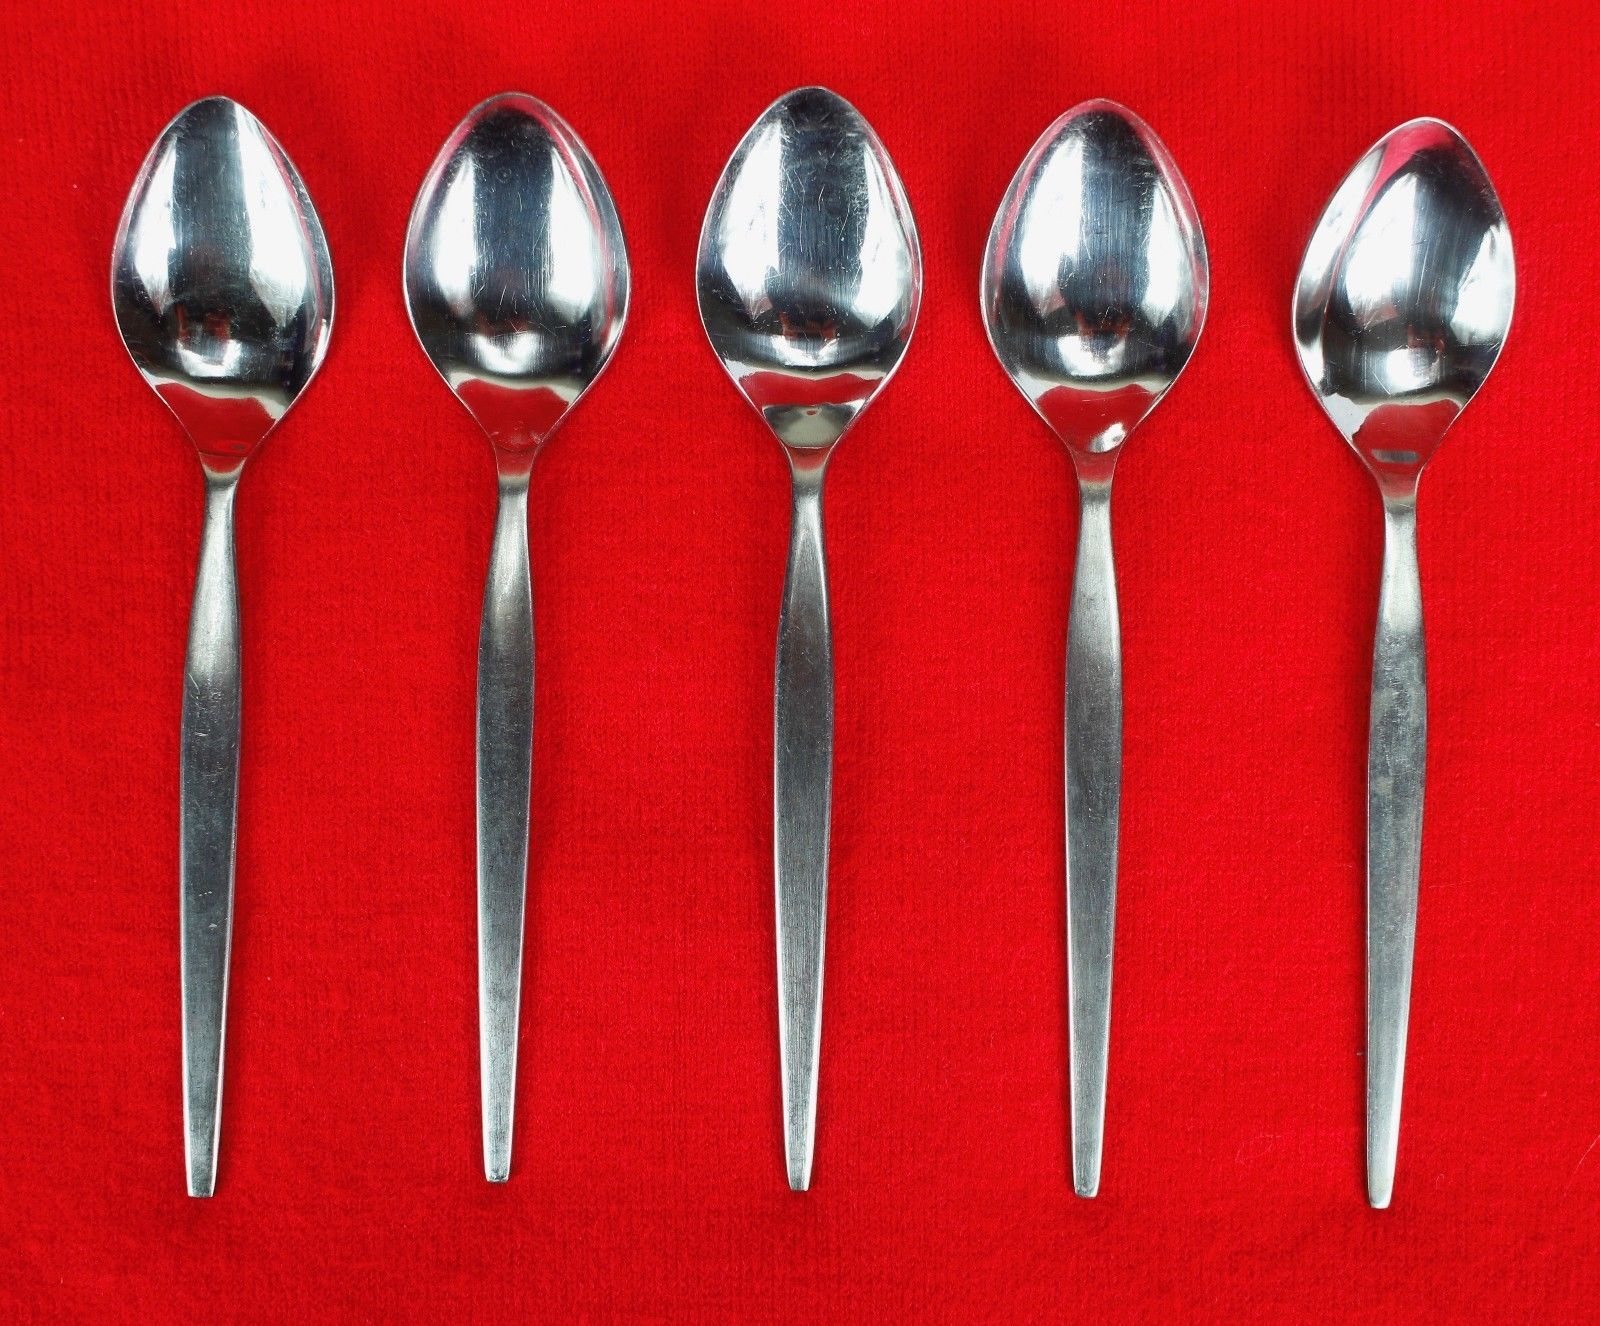 "5X Teaspoon Epic Silver Prince Satin Stainless Flatware 6.5"" Tea Spoons"